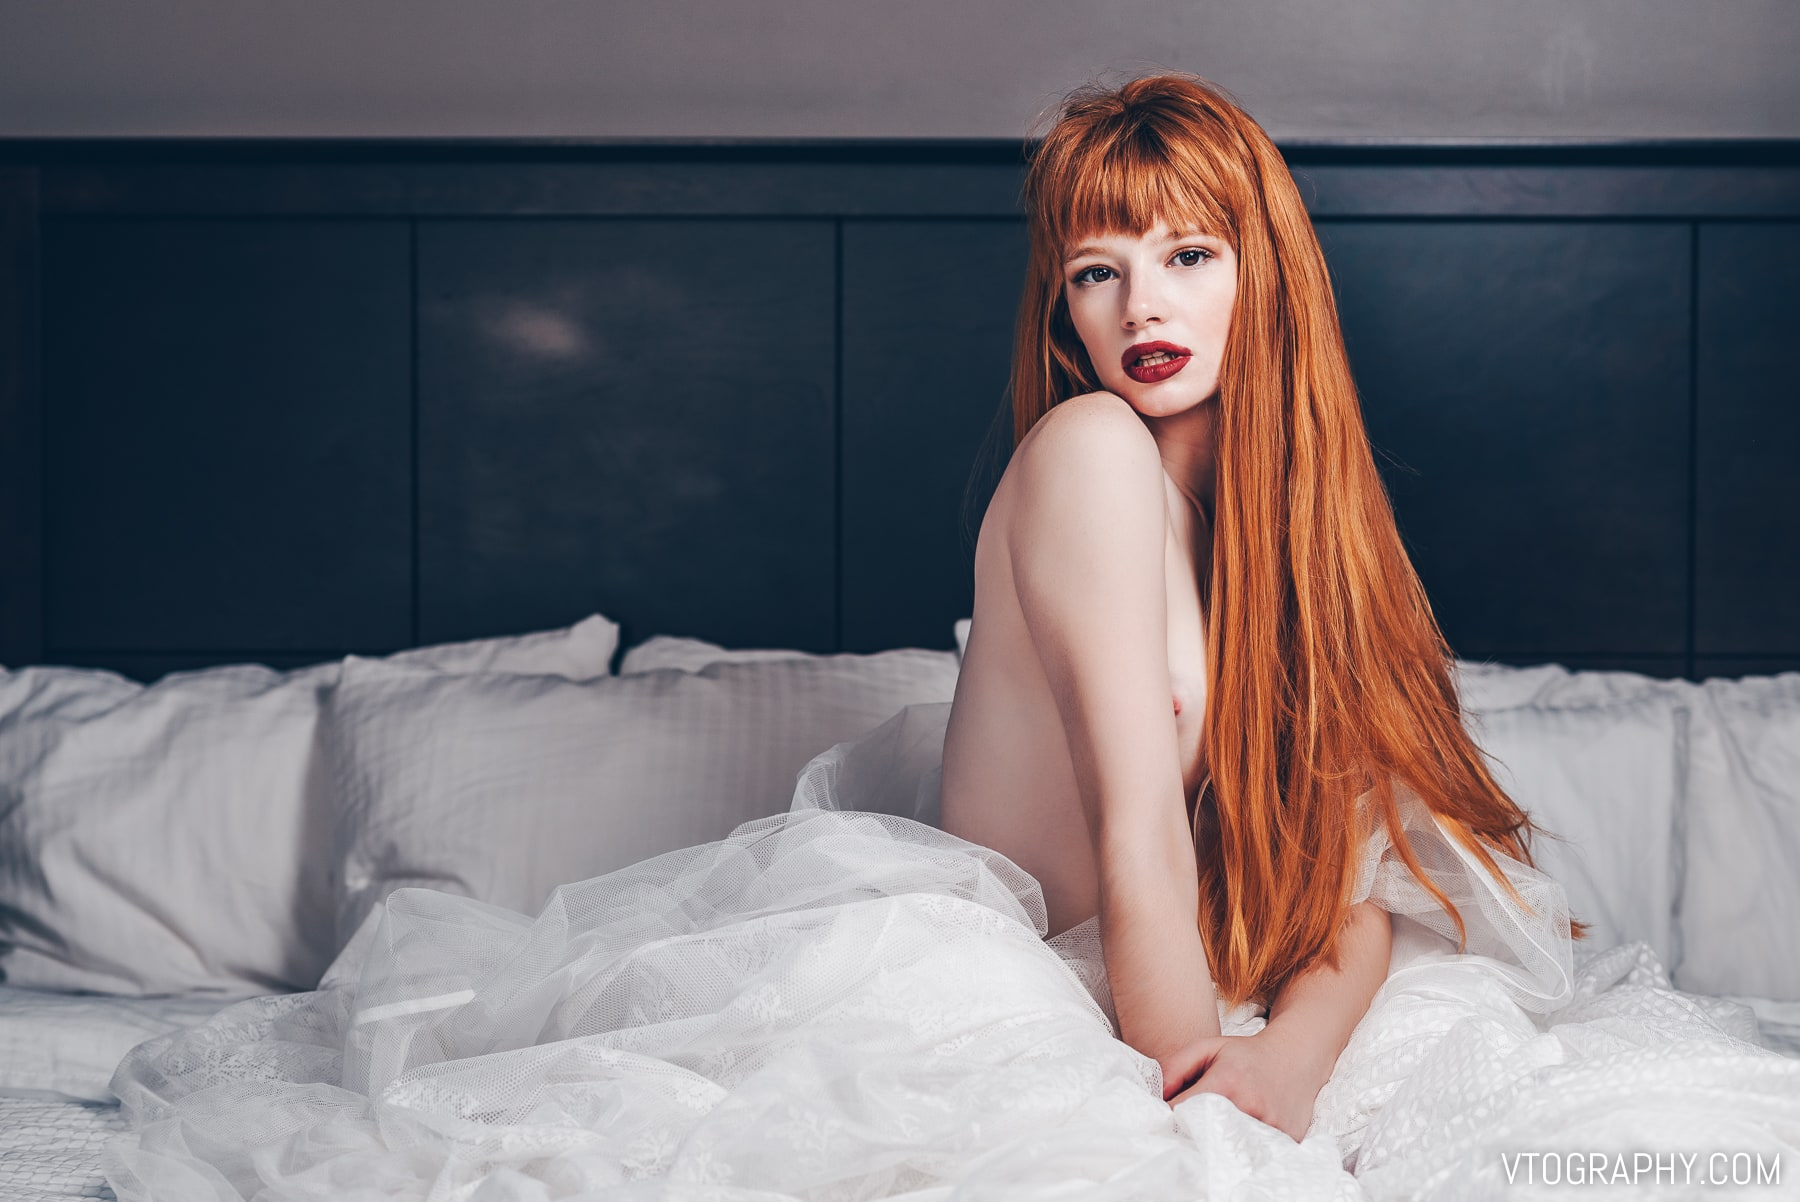 Boudoir photo shoot with redhead model Jamie aka @jamtothejars